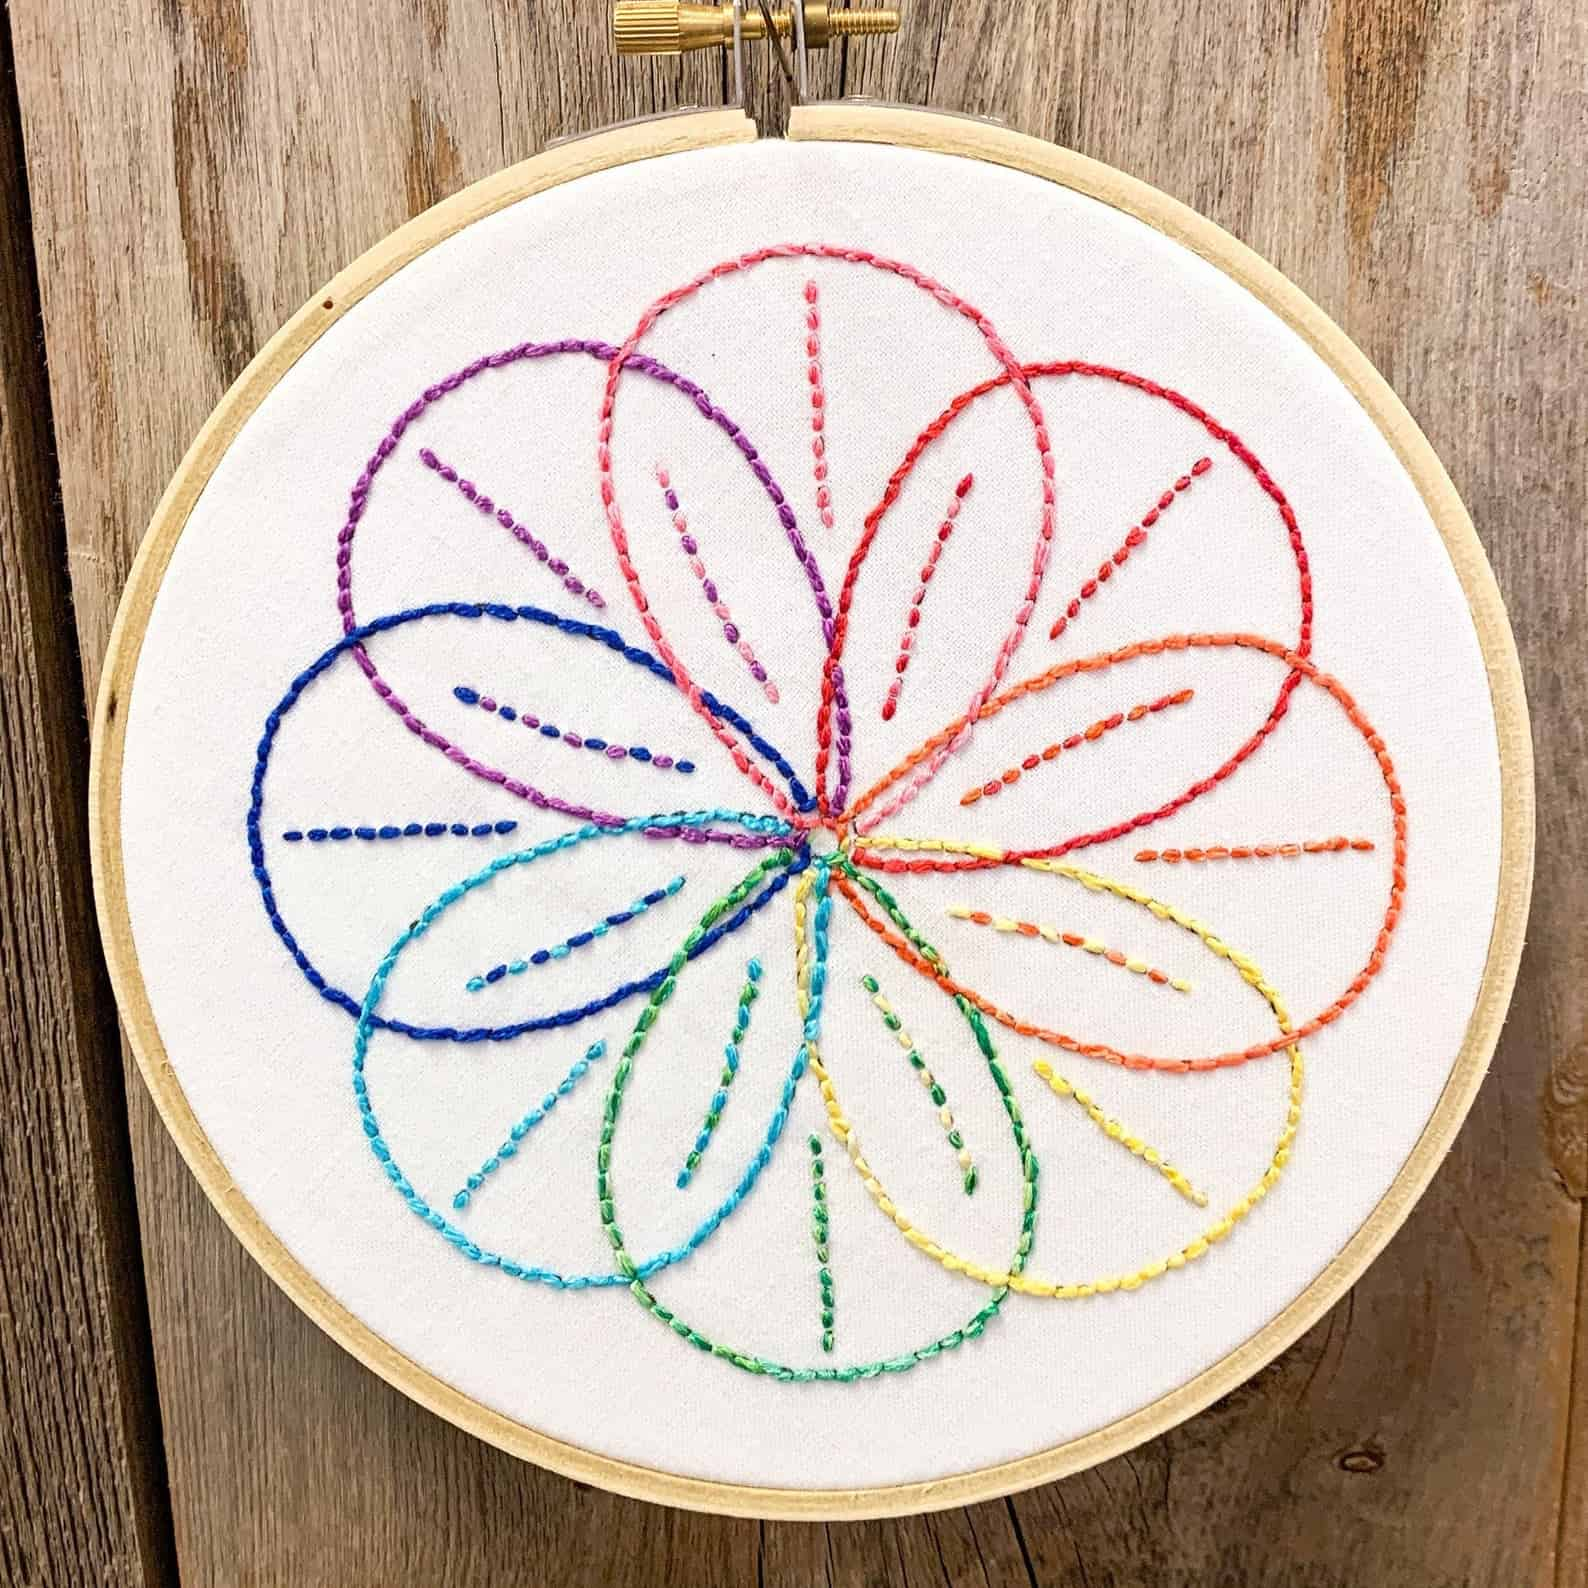 Rainbow spiral embroidery